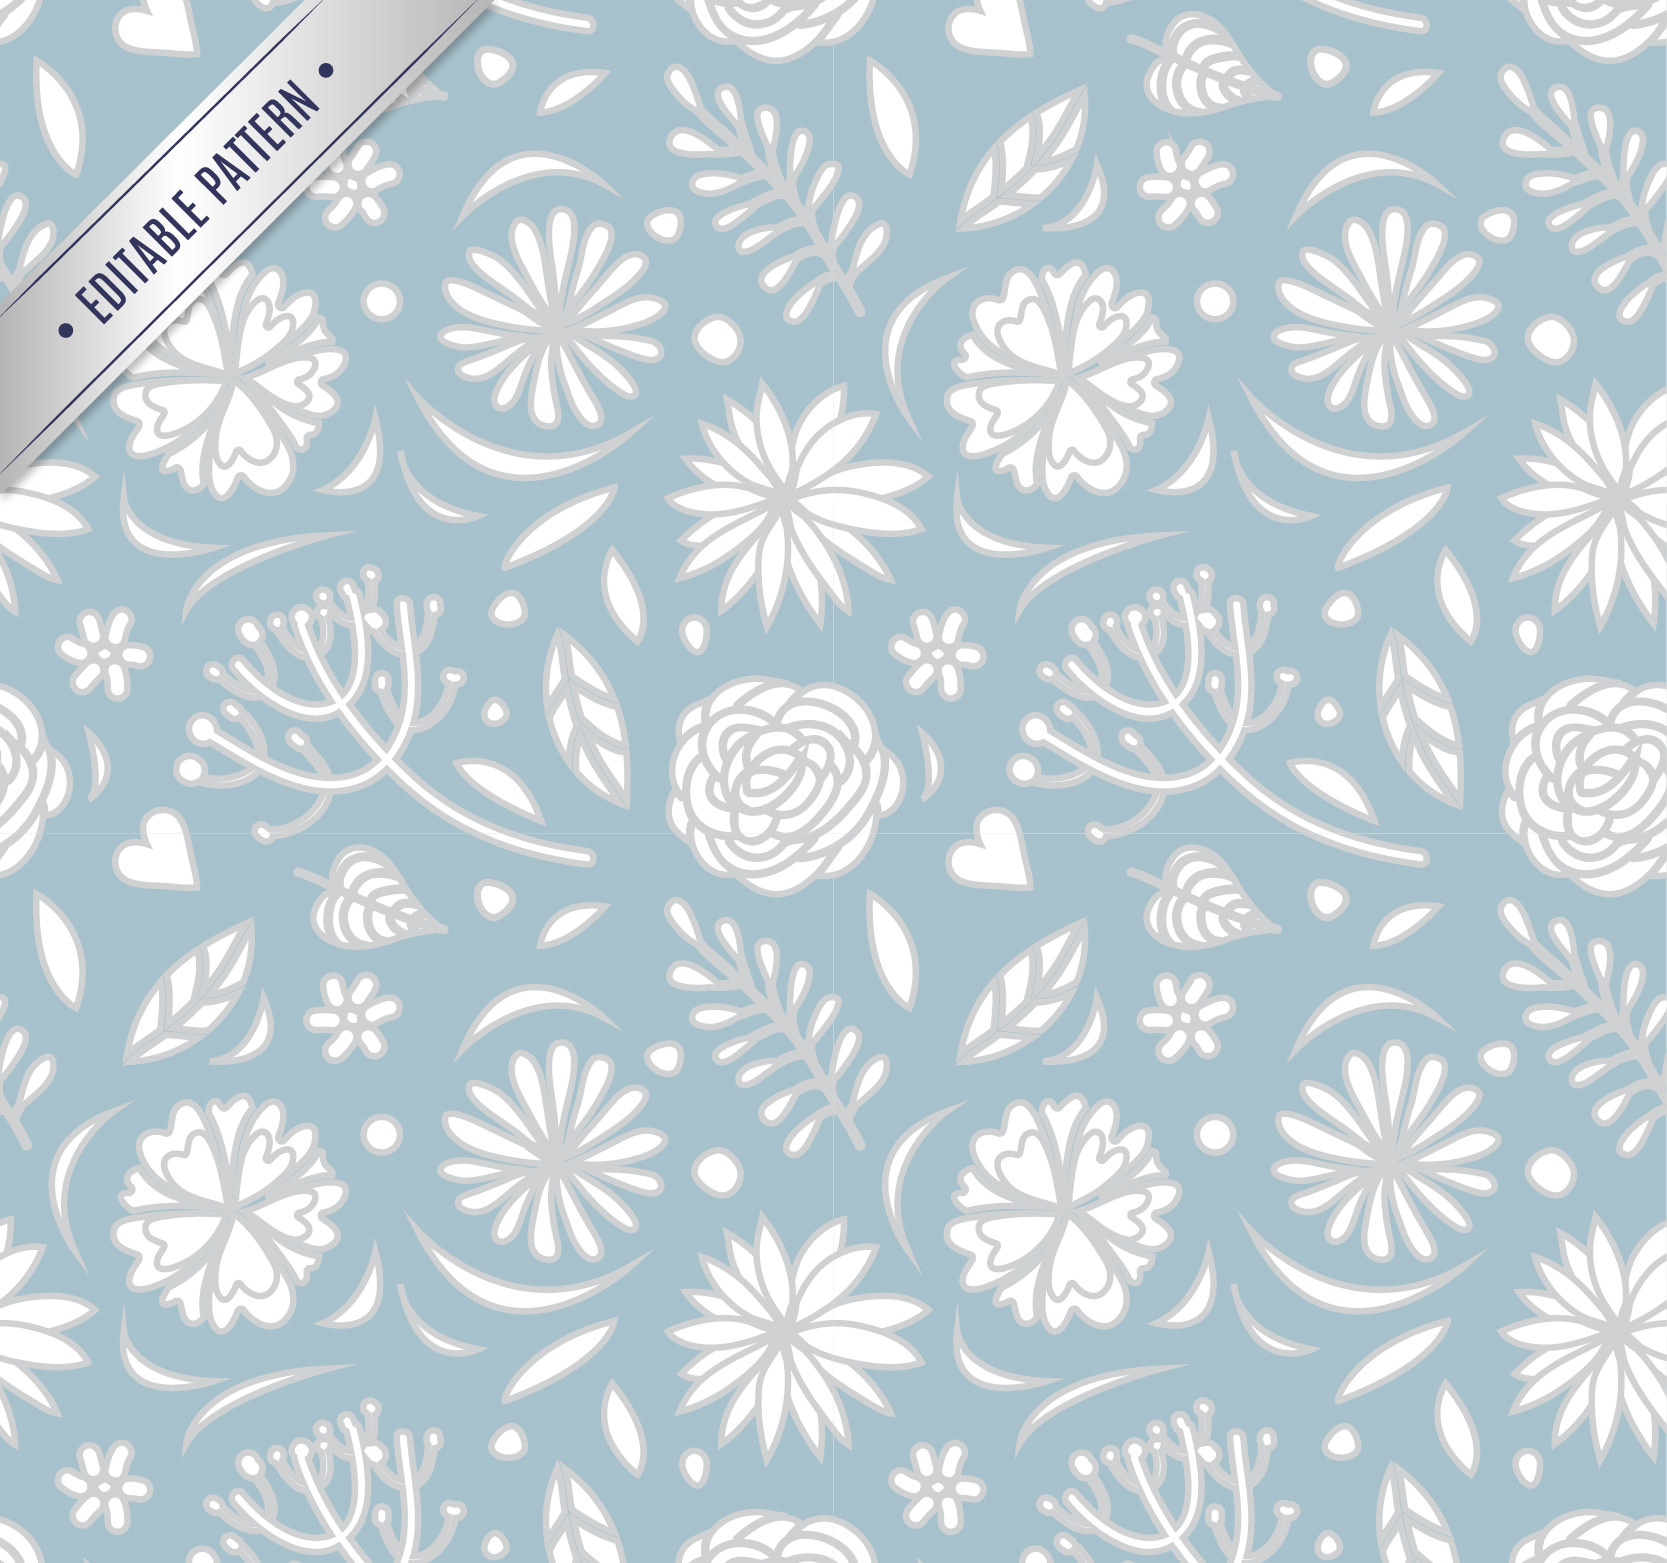 Free 20 Vintage Floral Patterns In Psd